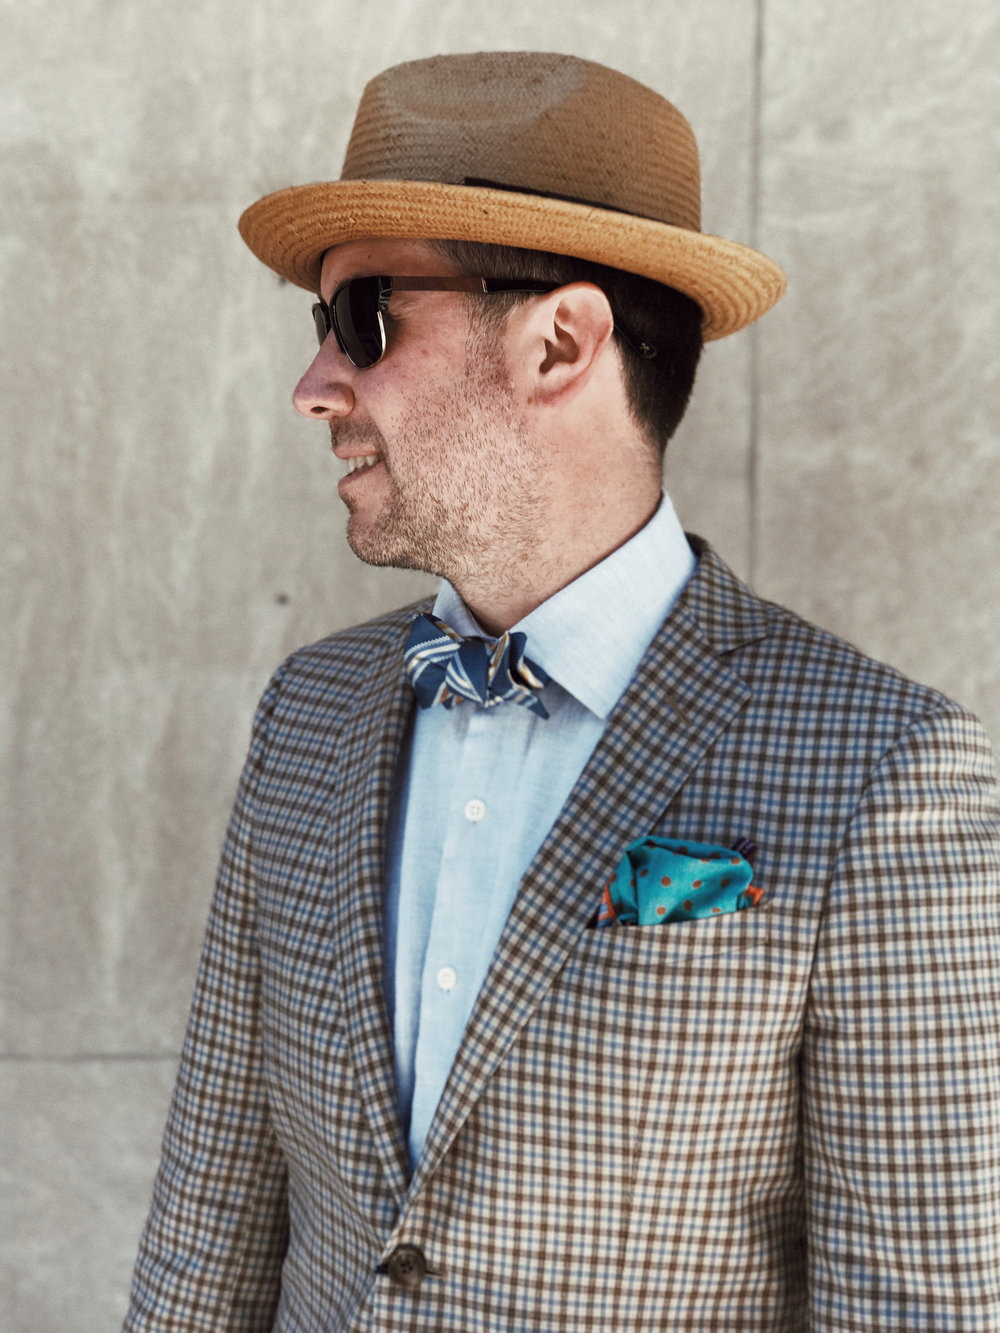 On Craig: Sunglasses: Shwood, Shirt: Peter Millar, Jacket: BluJacket, Bowtie: The QG, Pocket Square:  Seaward & Stern